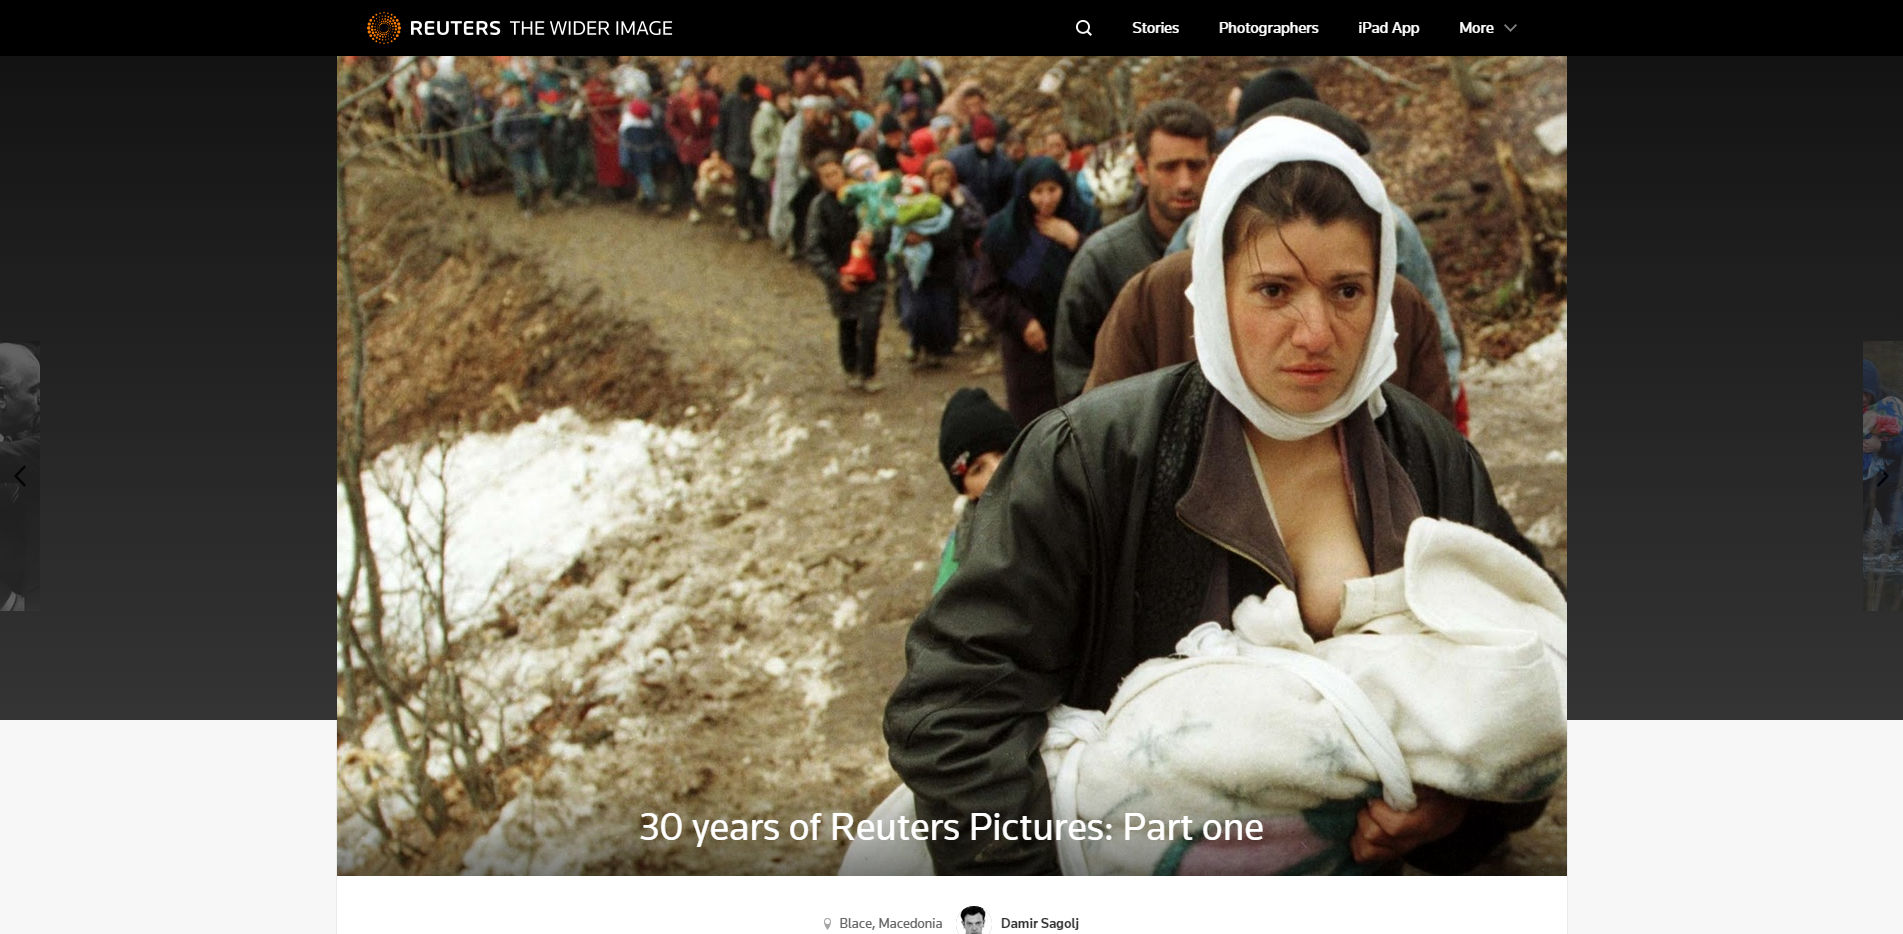 30 years of Reuters Pictures  Part one   The Wider Image   Reuters